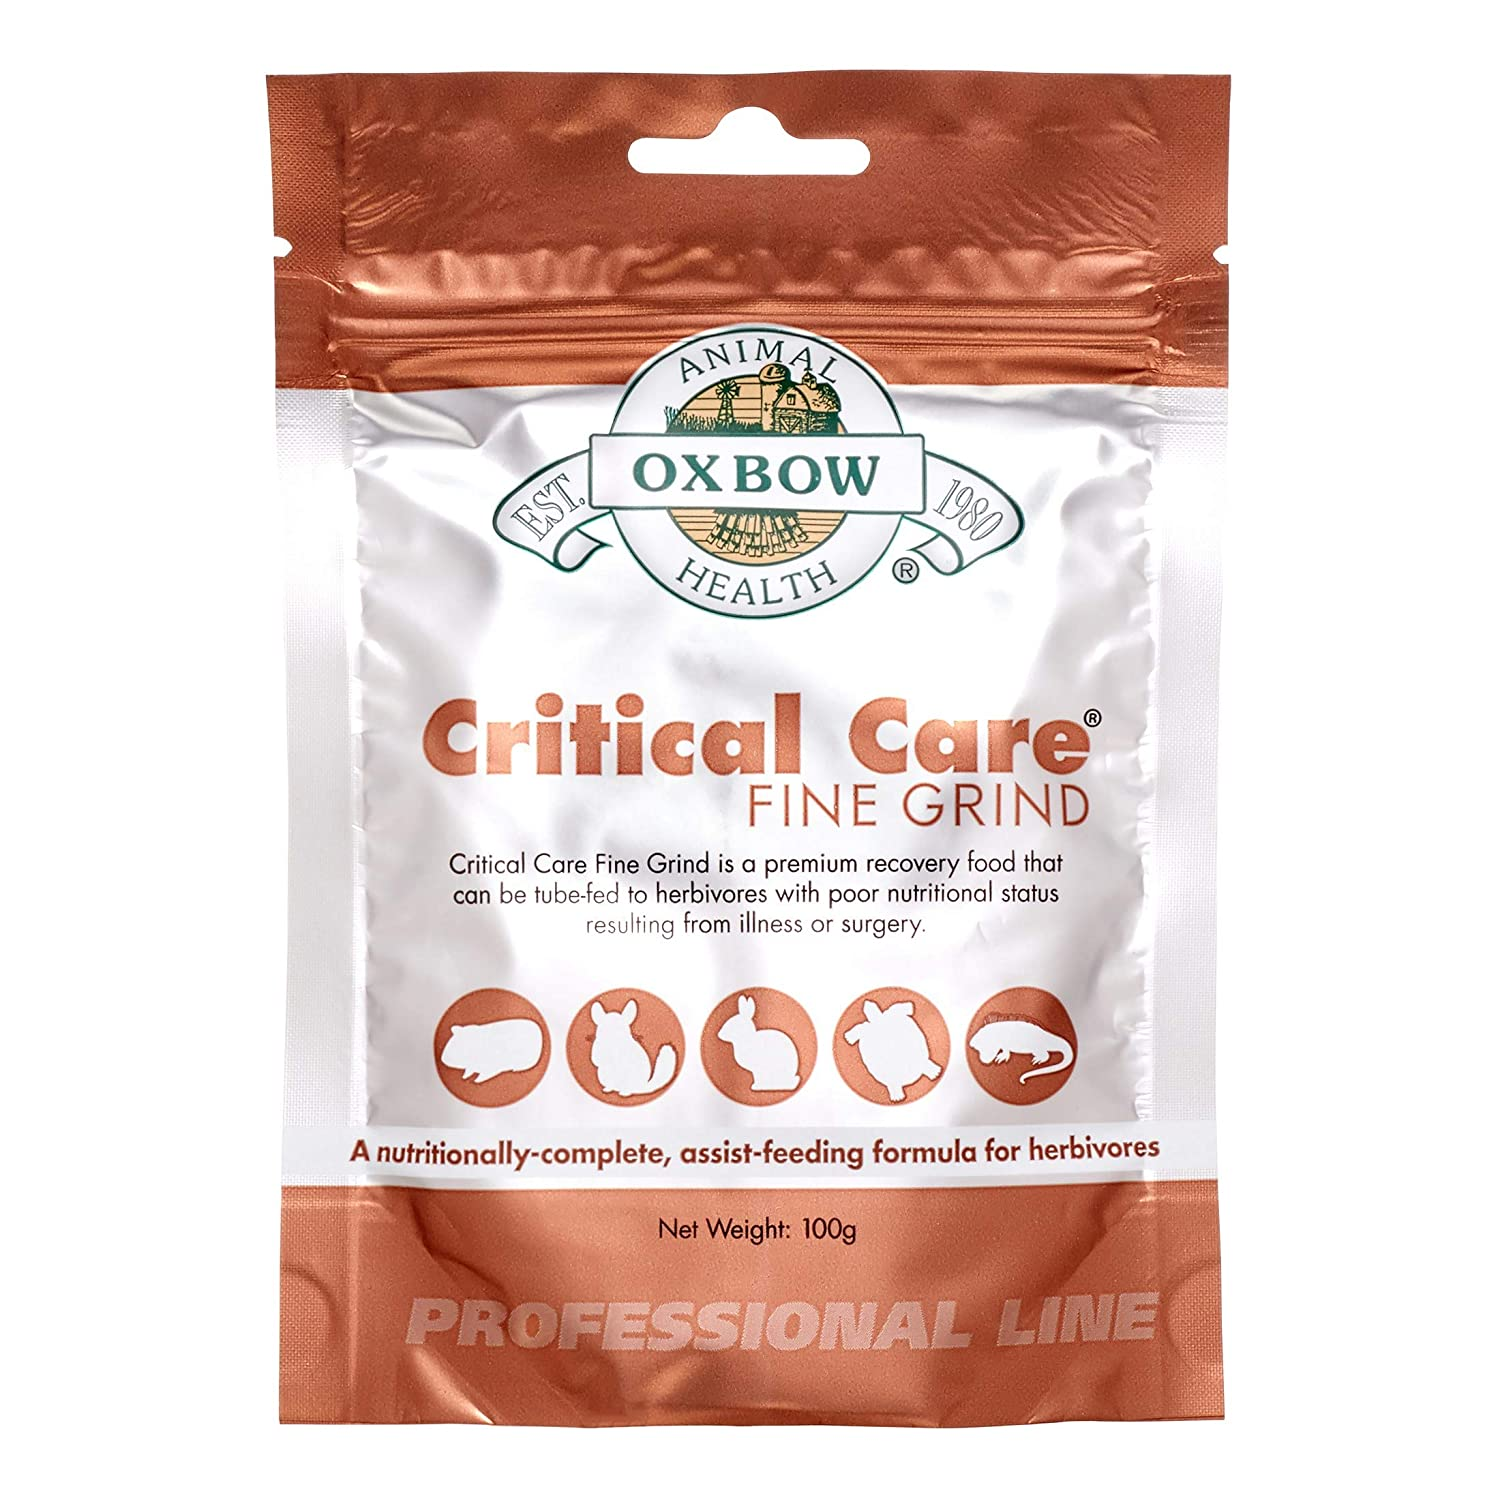 Oxbow Critical Care Professional Line 3.5 Ounces| Fine Grind | 1 Bag